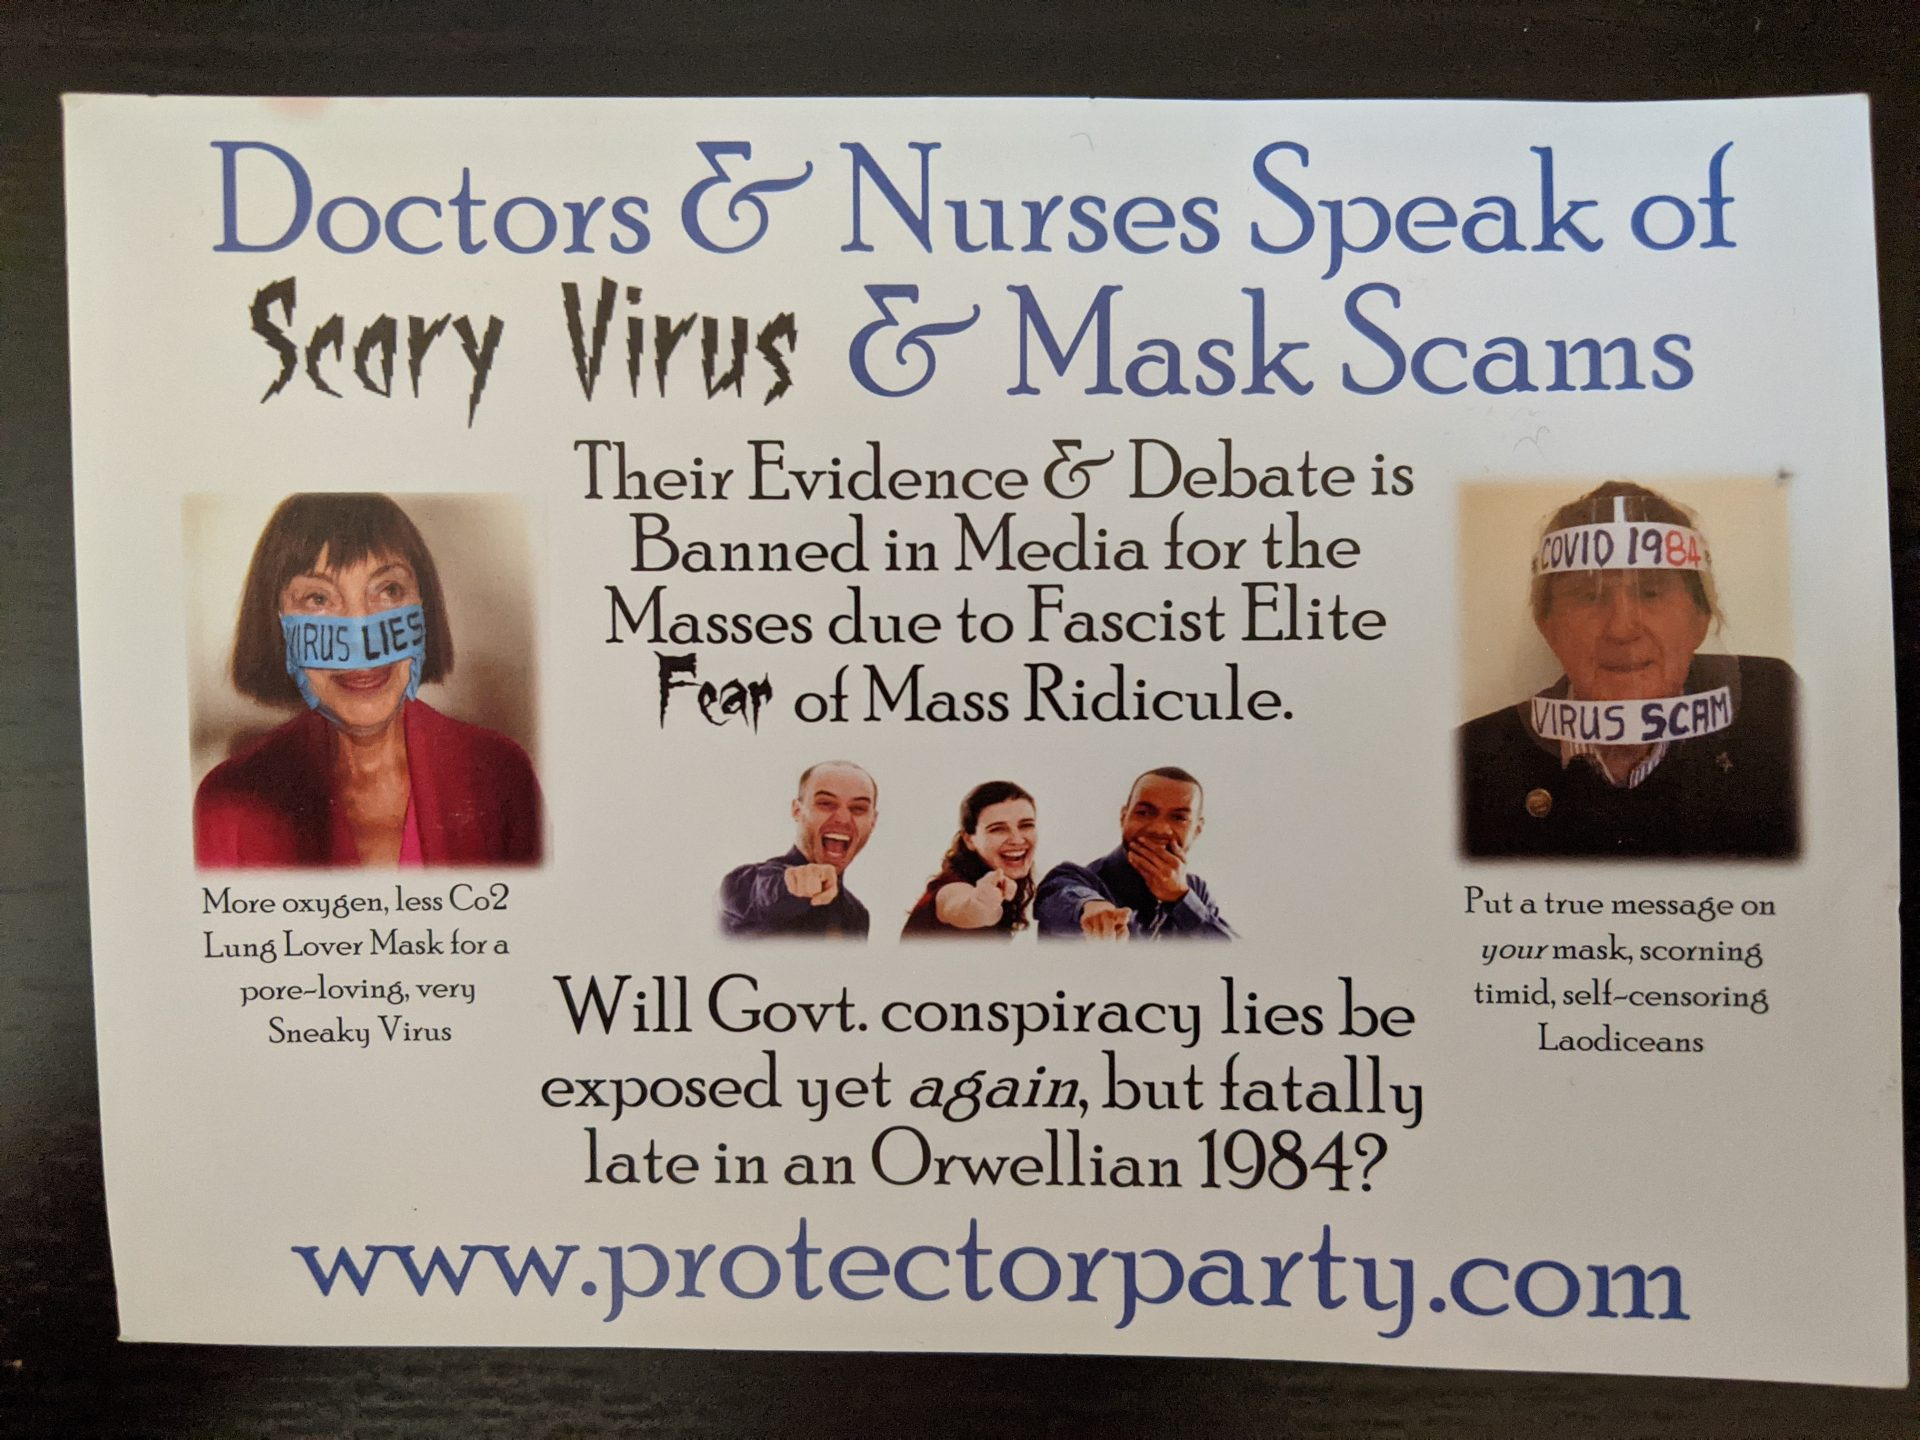 Flyer with headline 'Doctors and nurses speak of scary virus and mask scams'. Includes images of two people wearing face masks with protest messaging.